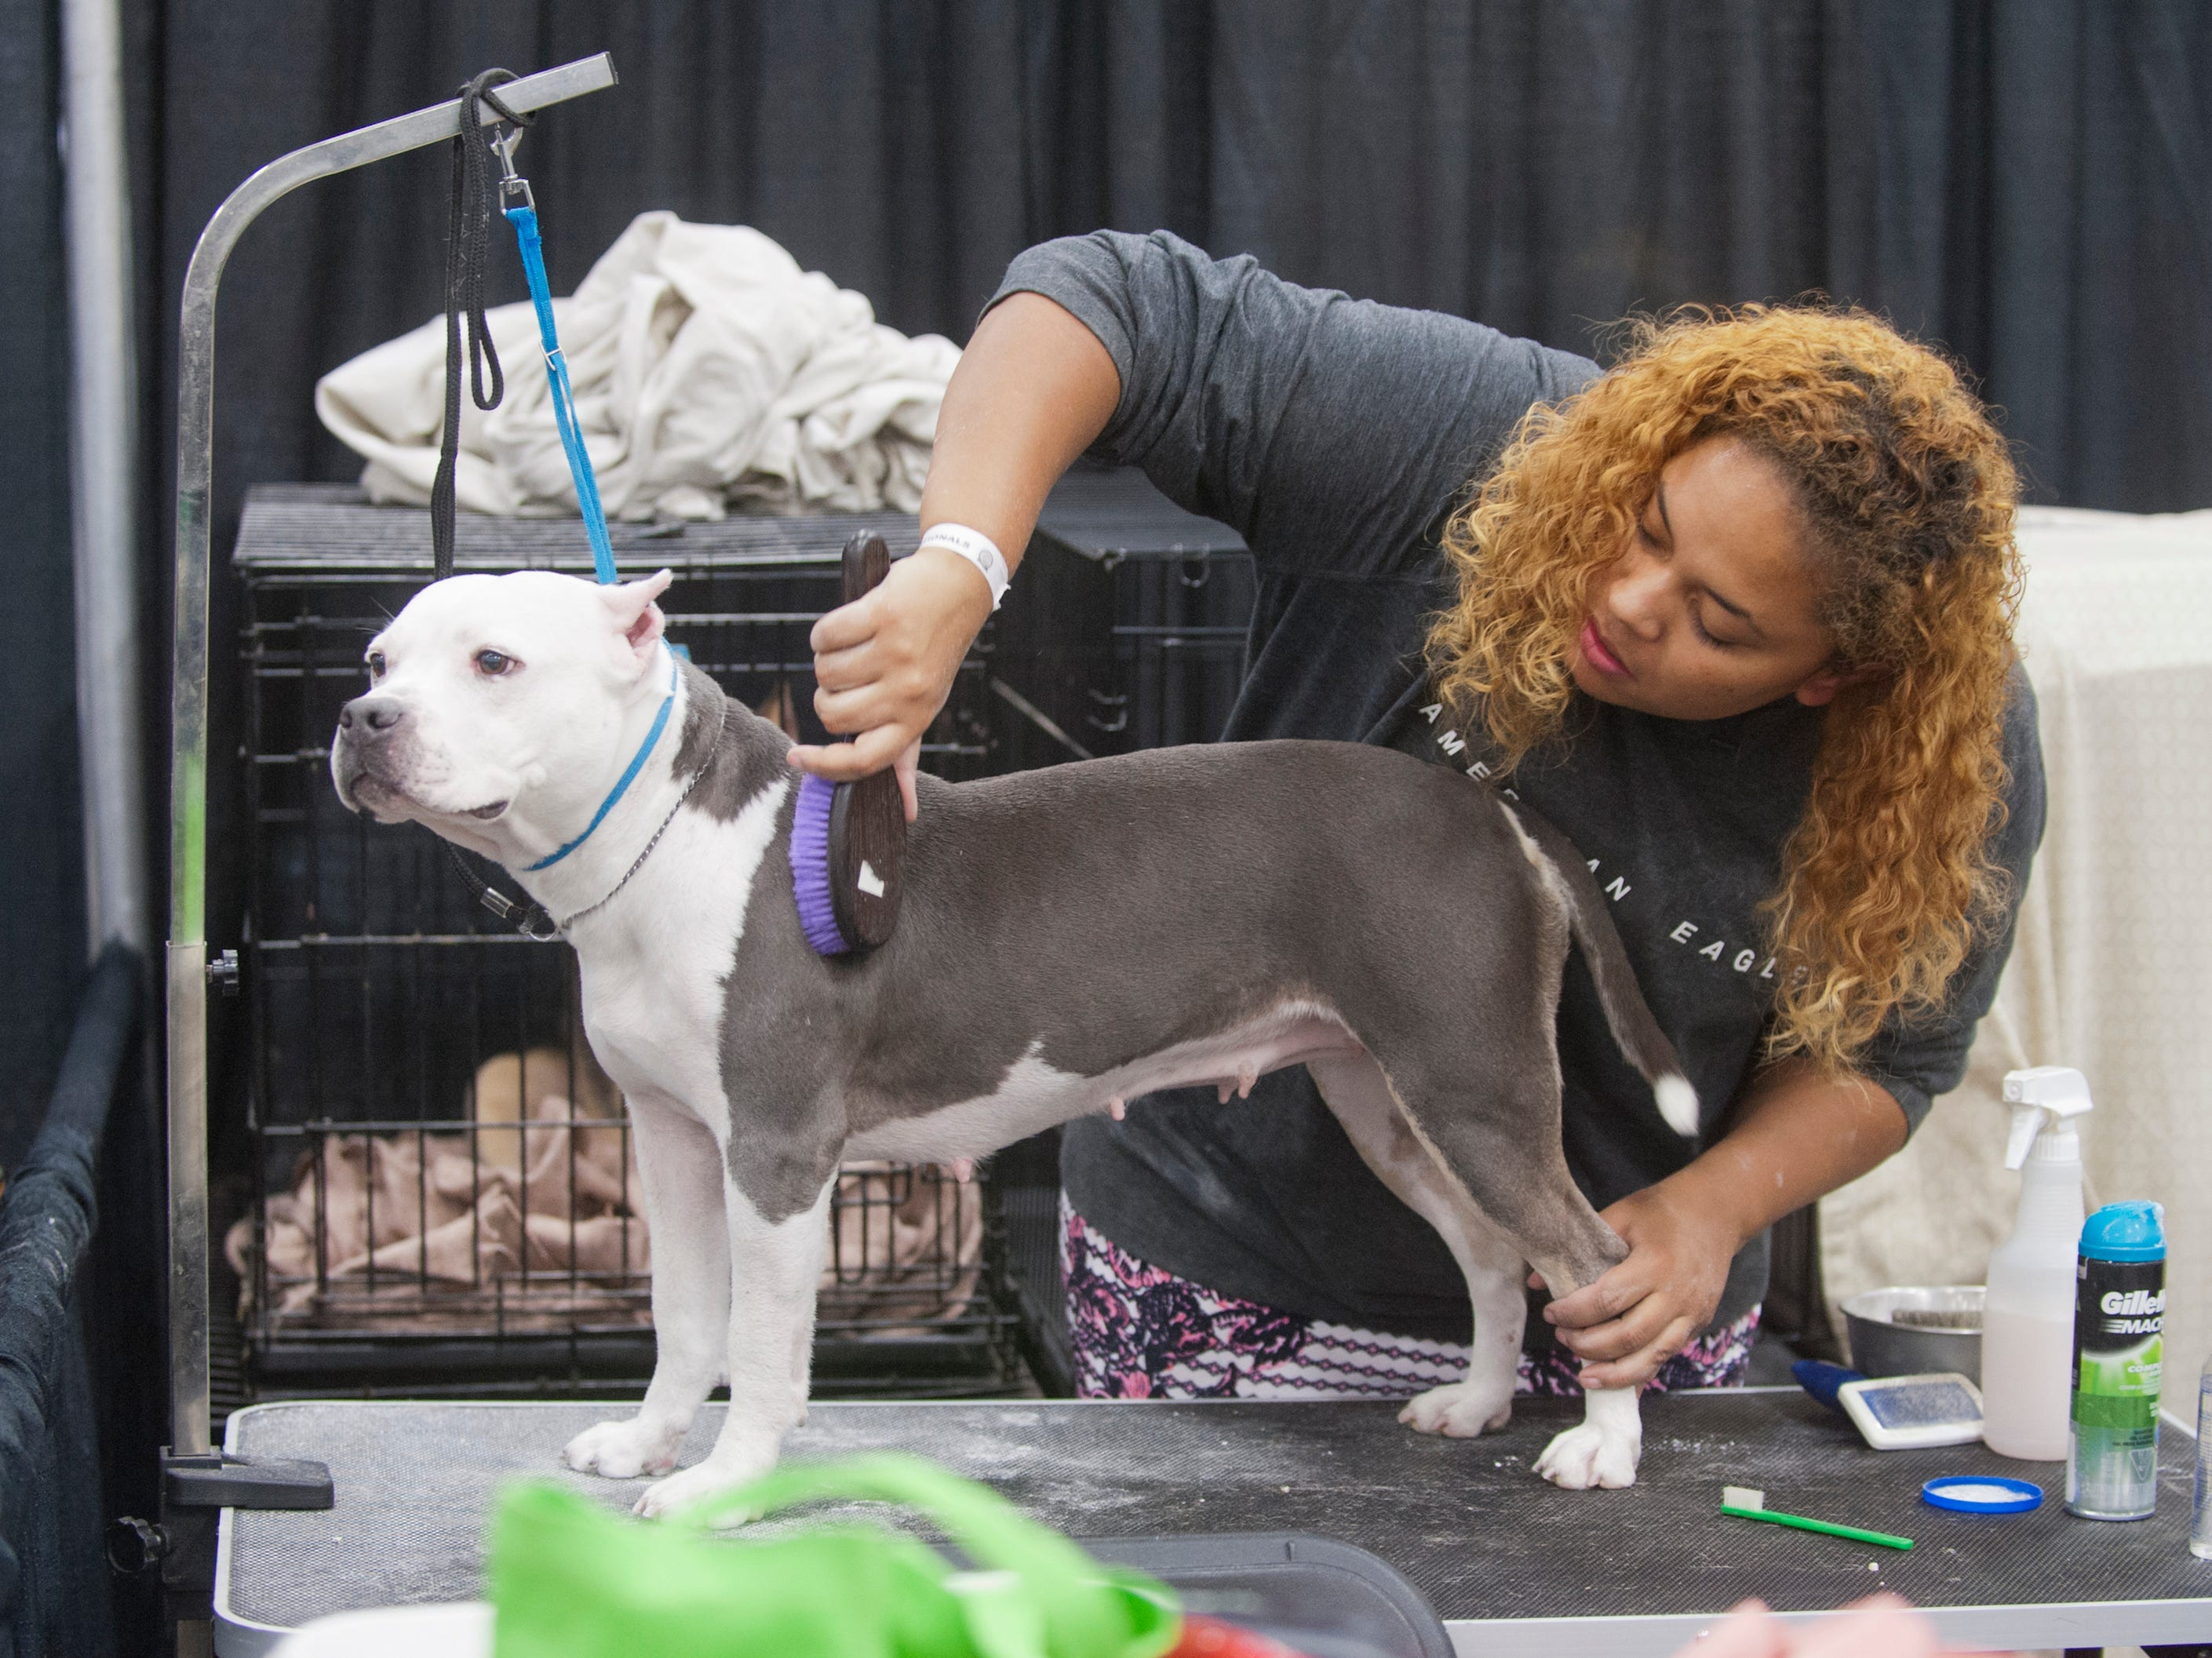 Golden Glove Kennels' Morgan Barrick of Vine Grove, Ky., owner and handler of grand champion Trouble, grooms the dog at the 2018 American Bully Kennel Club's 12th annual confirmation event at the Kentucky Convention Center in Louisville. November 10, 2018